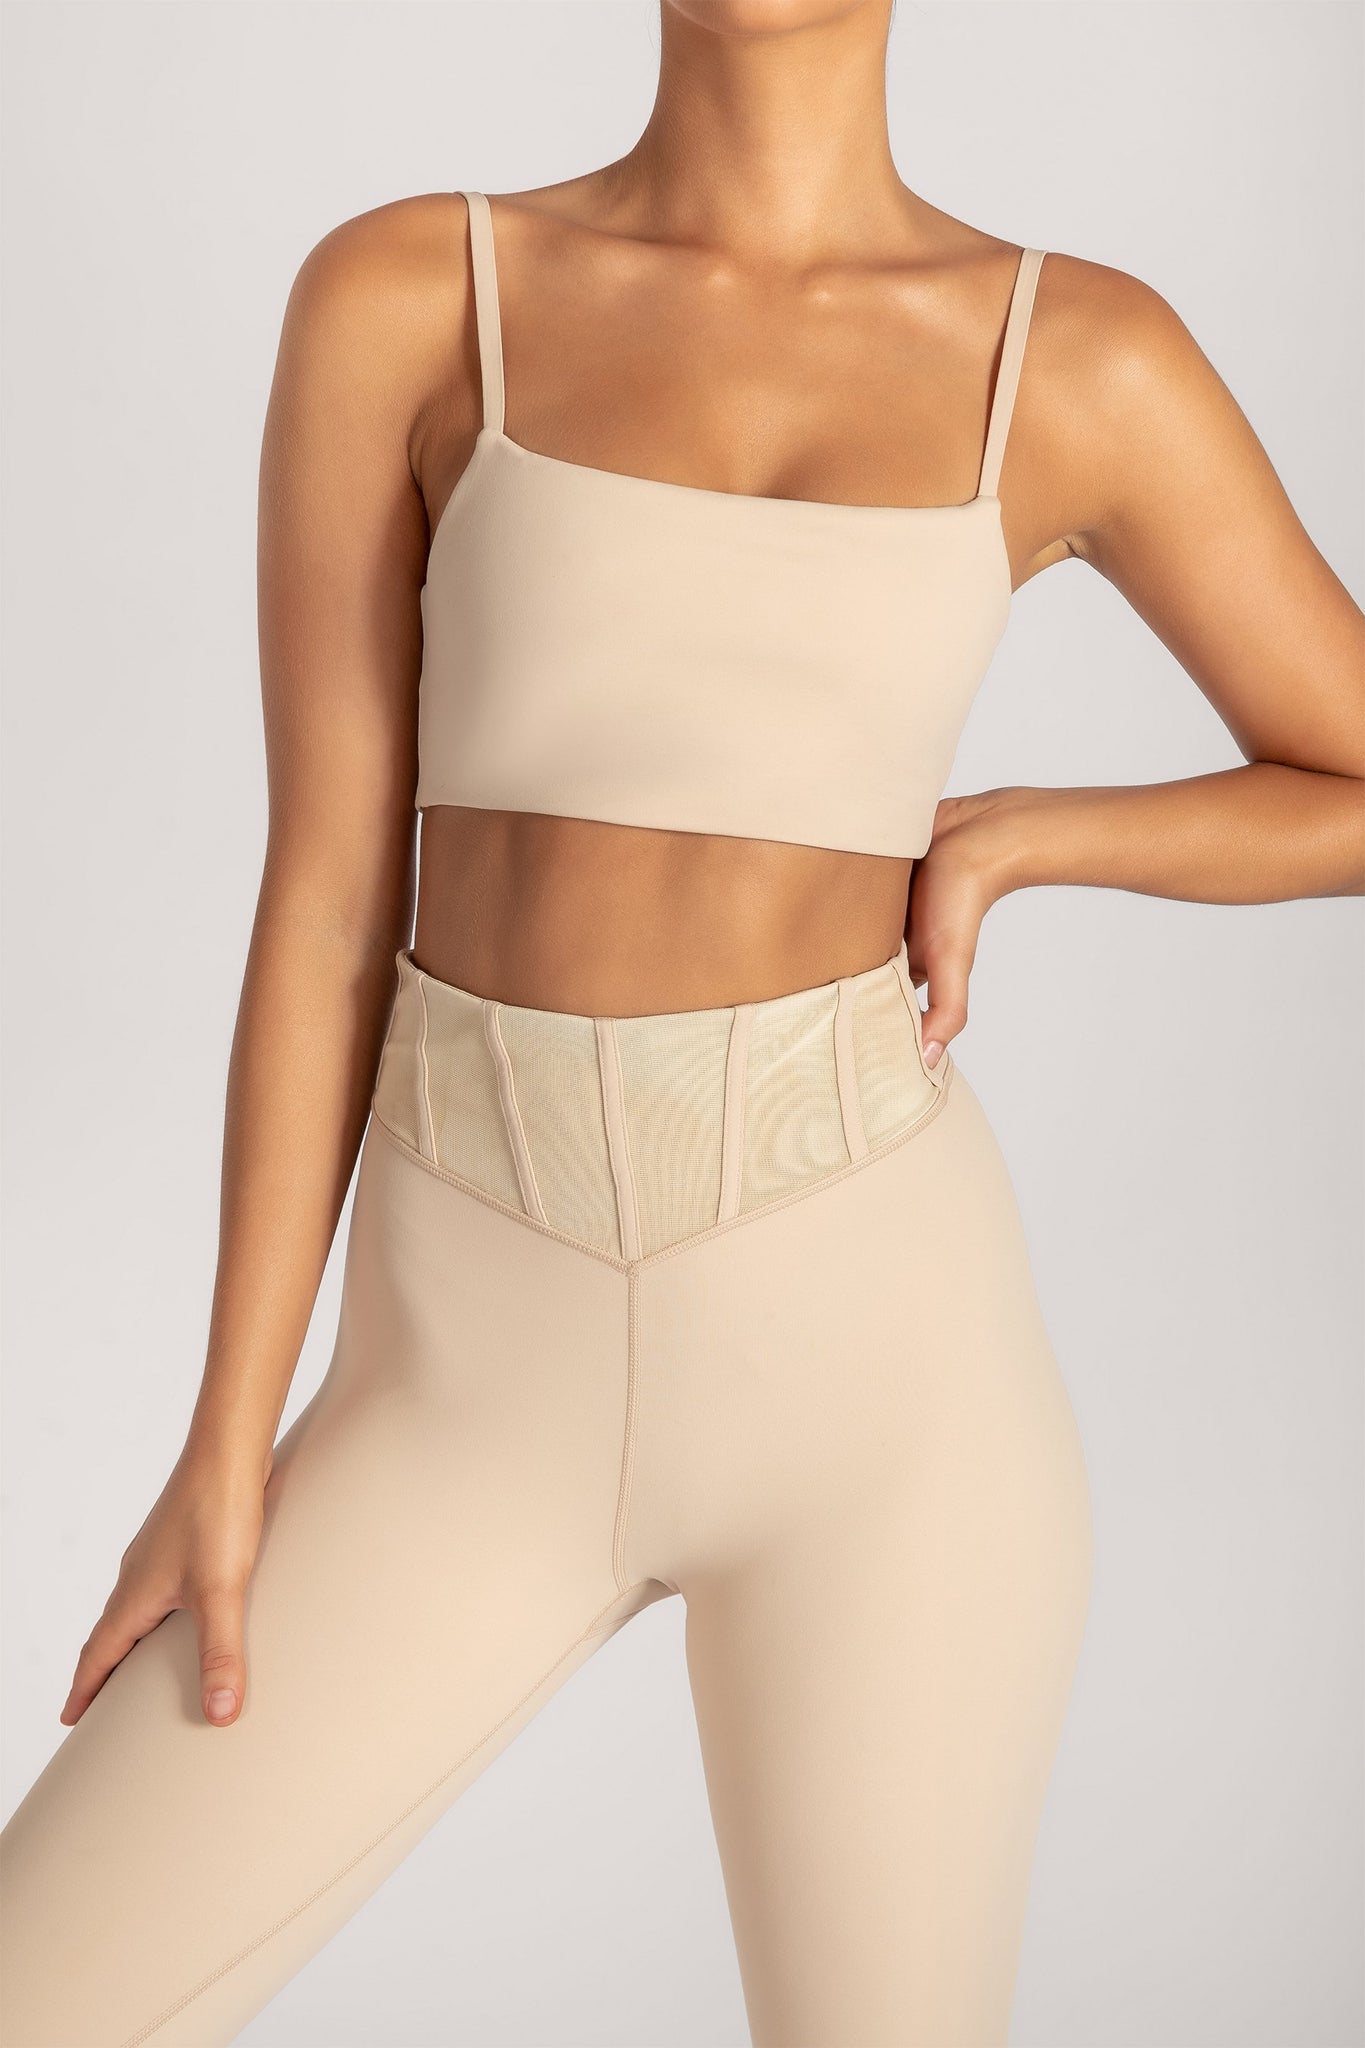 Asteria Thin Strap Crop Top - Nude - MESHKI